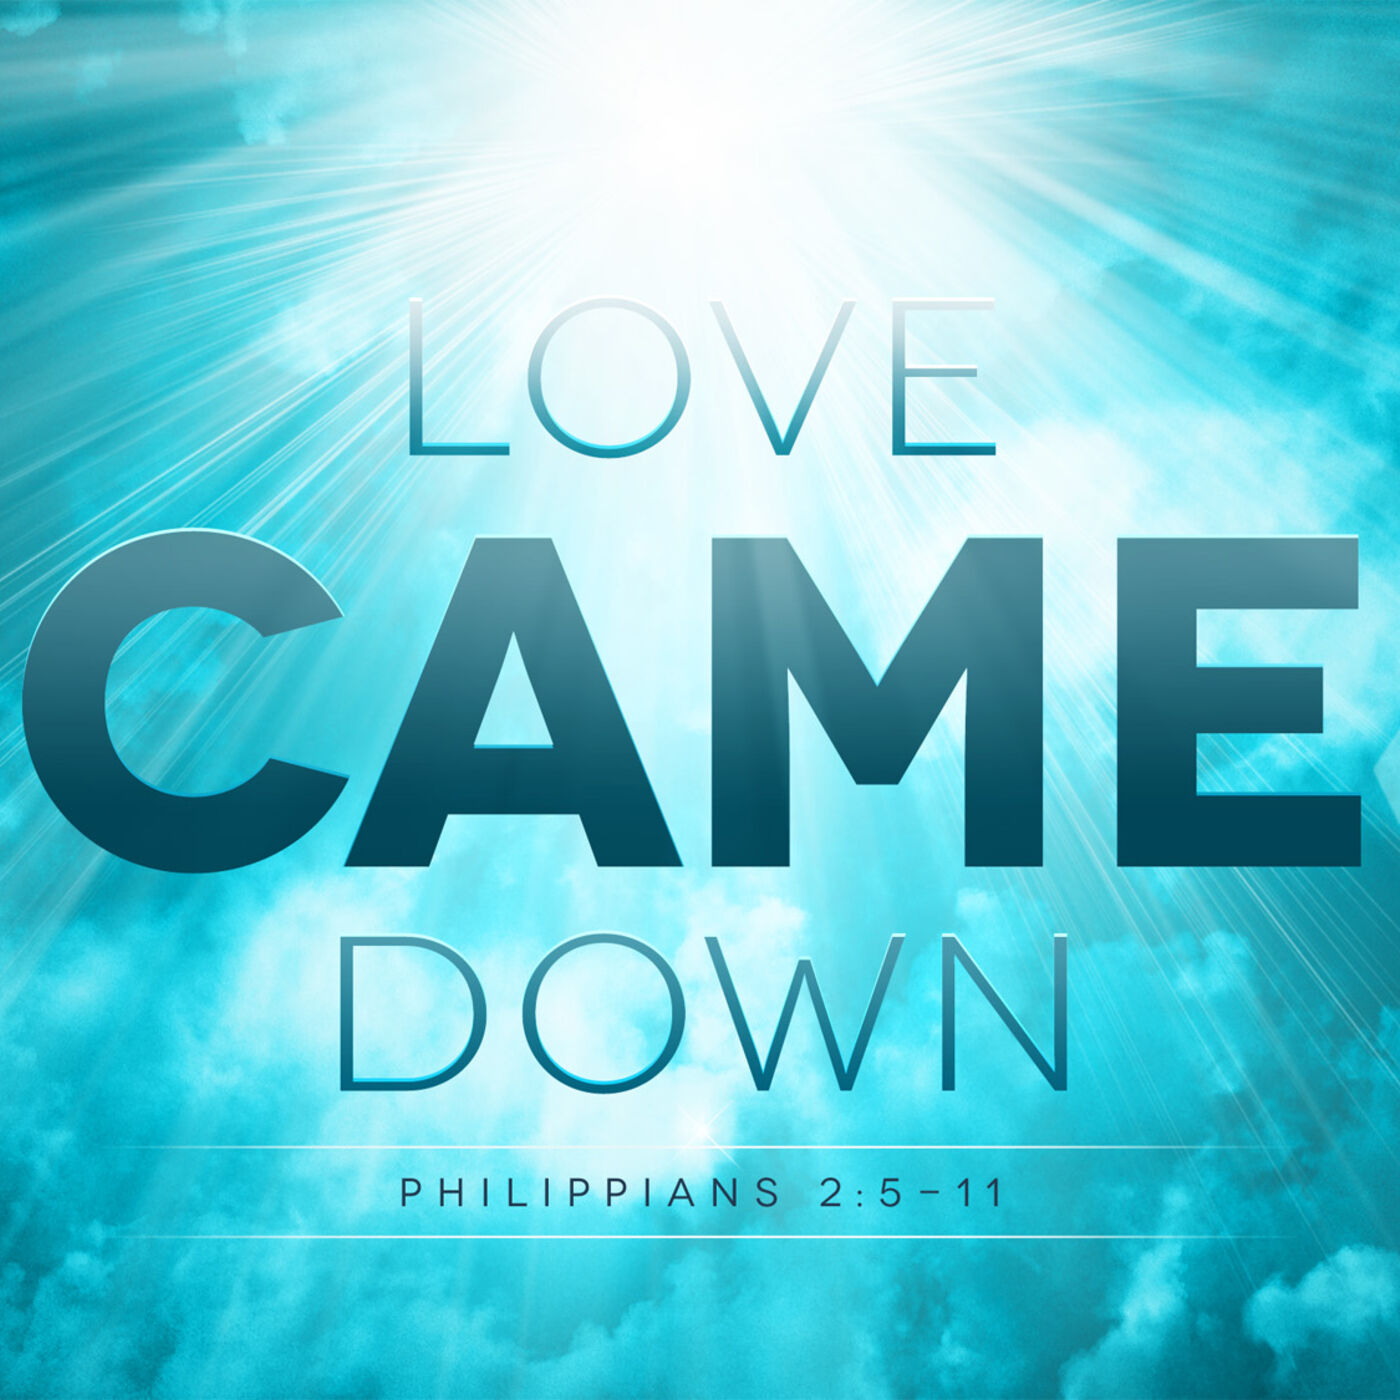 Philippians Series | Love Came Down | Senior Paster Greg Crocker